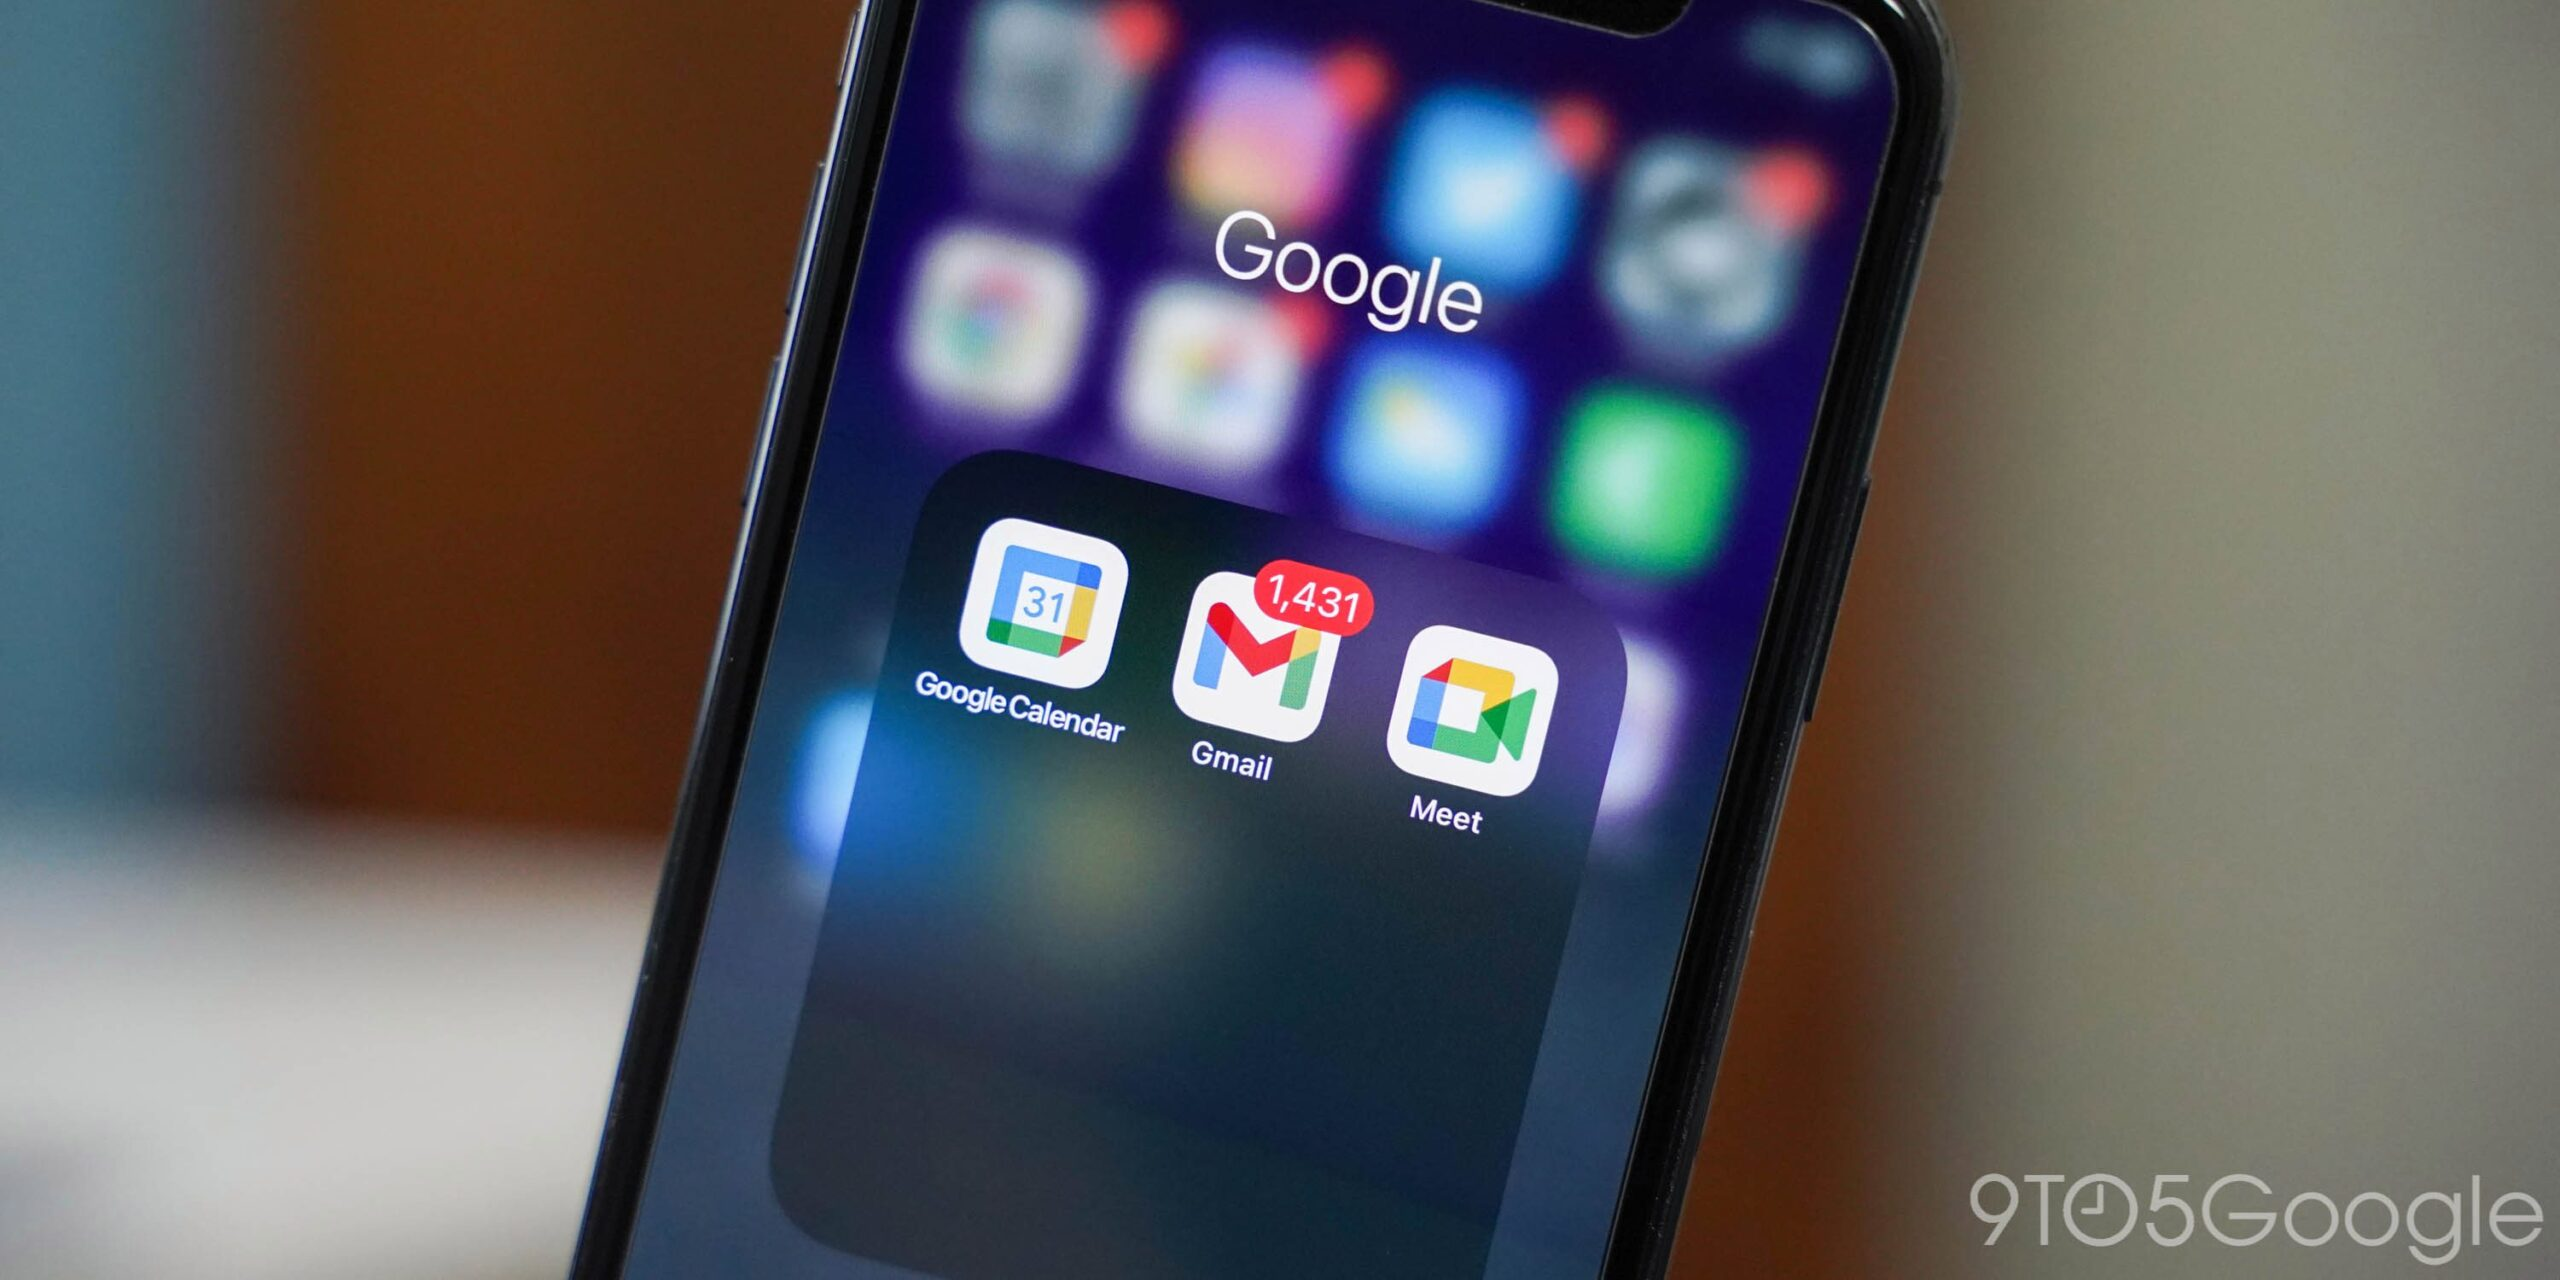 Google updates on iOS return in earnest with Gmail, Calendar, and Docs today